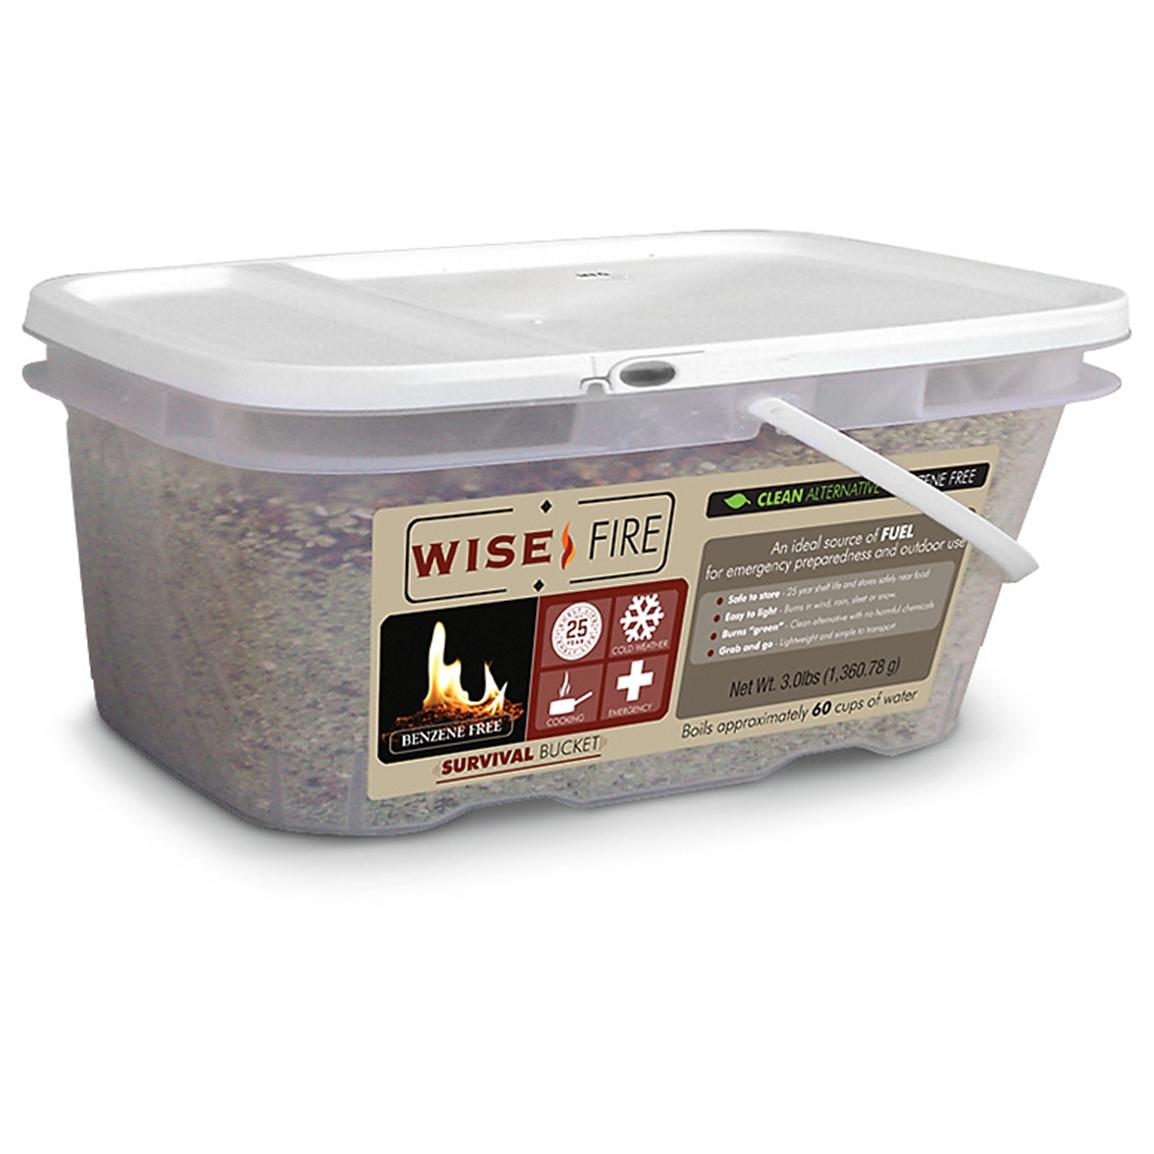 WiseFire Fuel Source, 60 cups